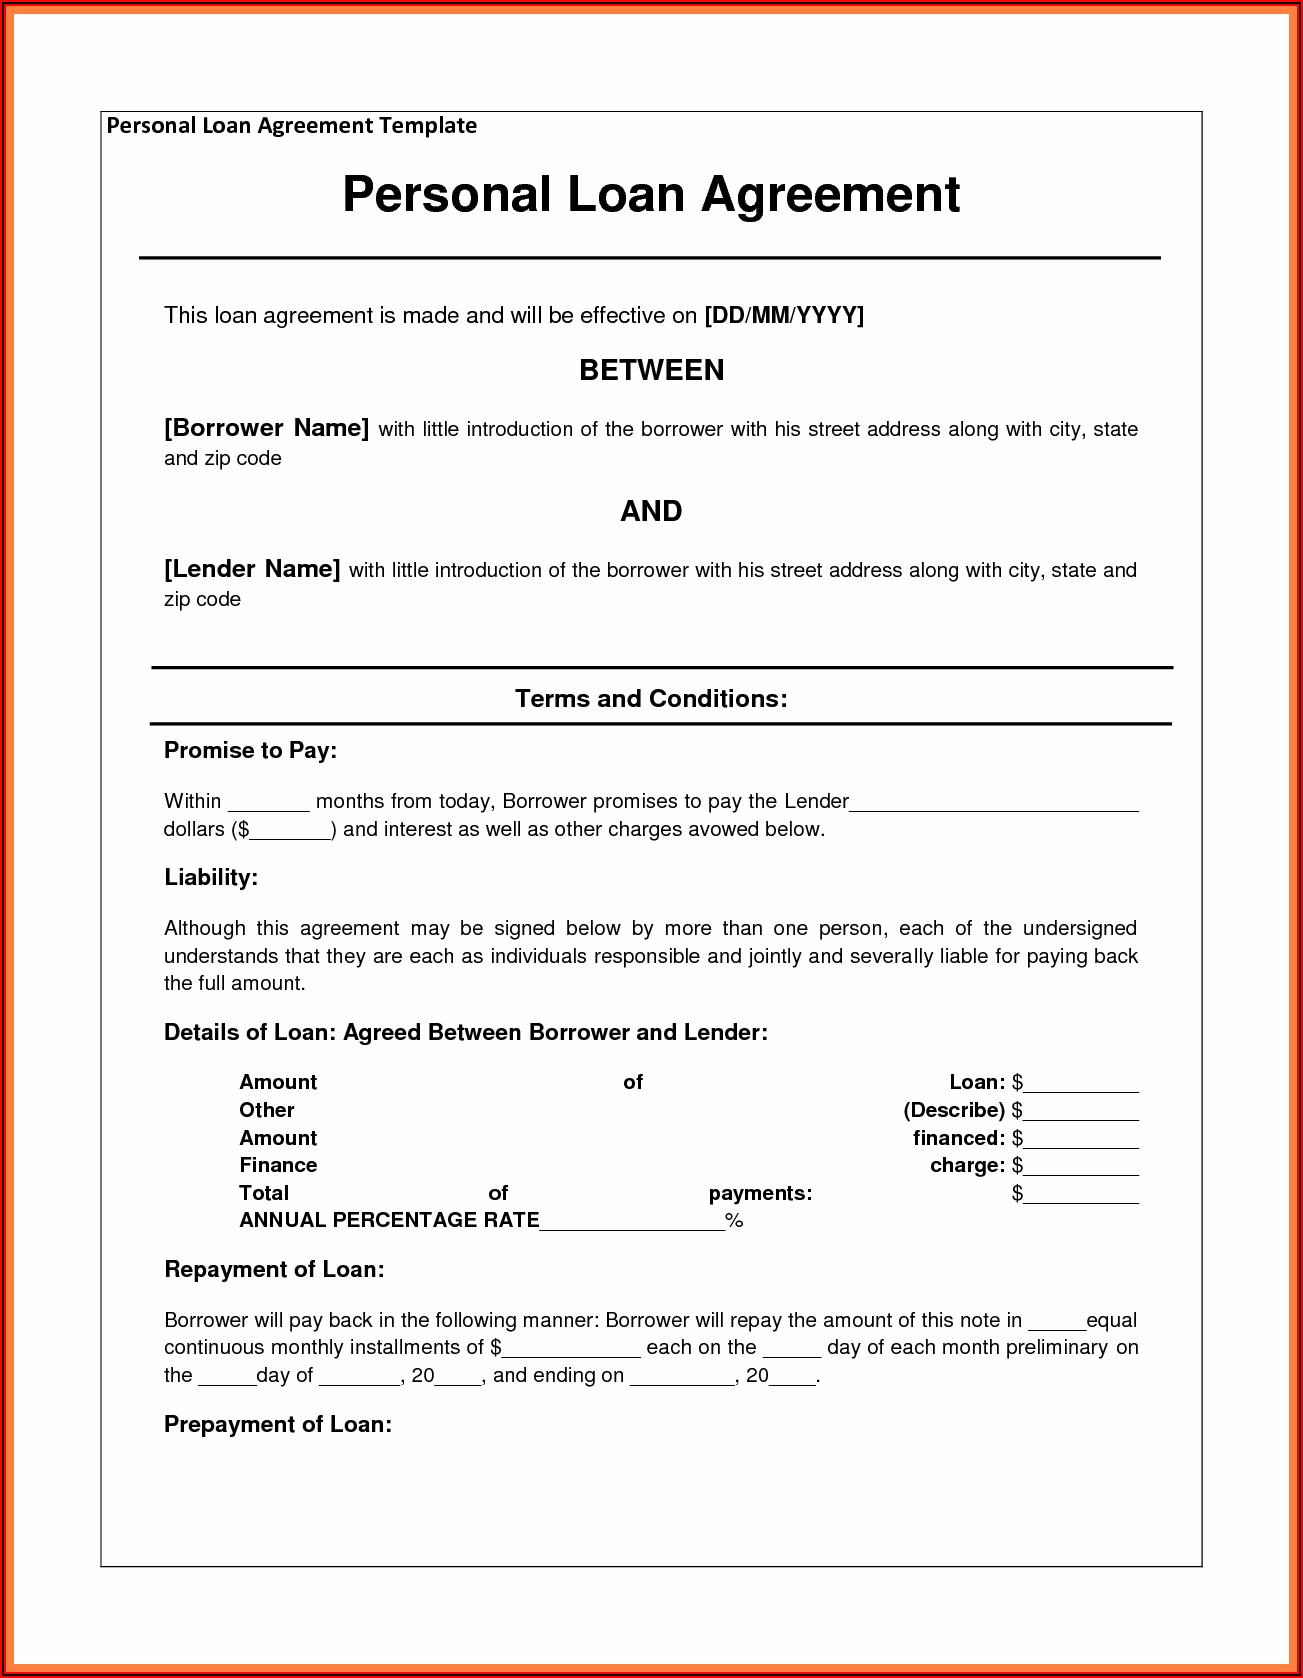 Personal Loan Agreement Template Ms Word